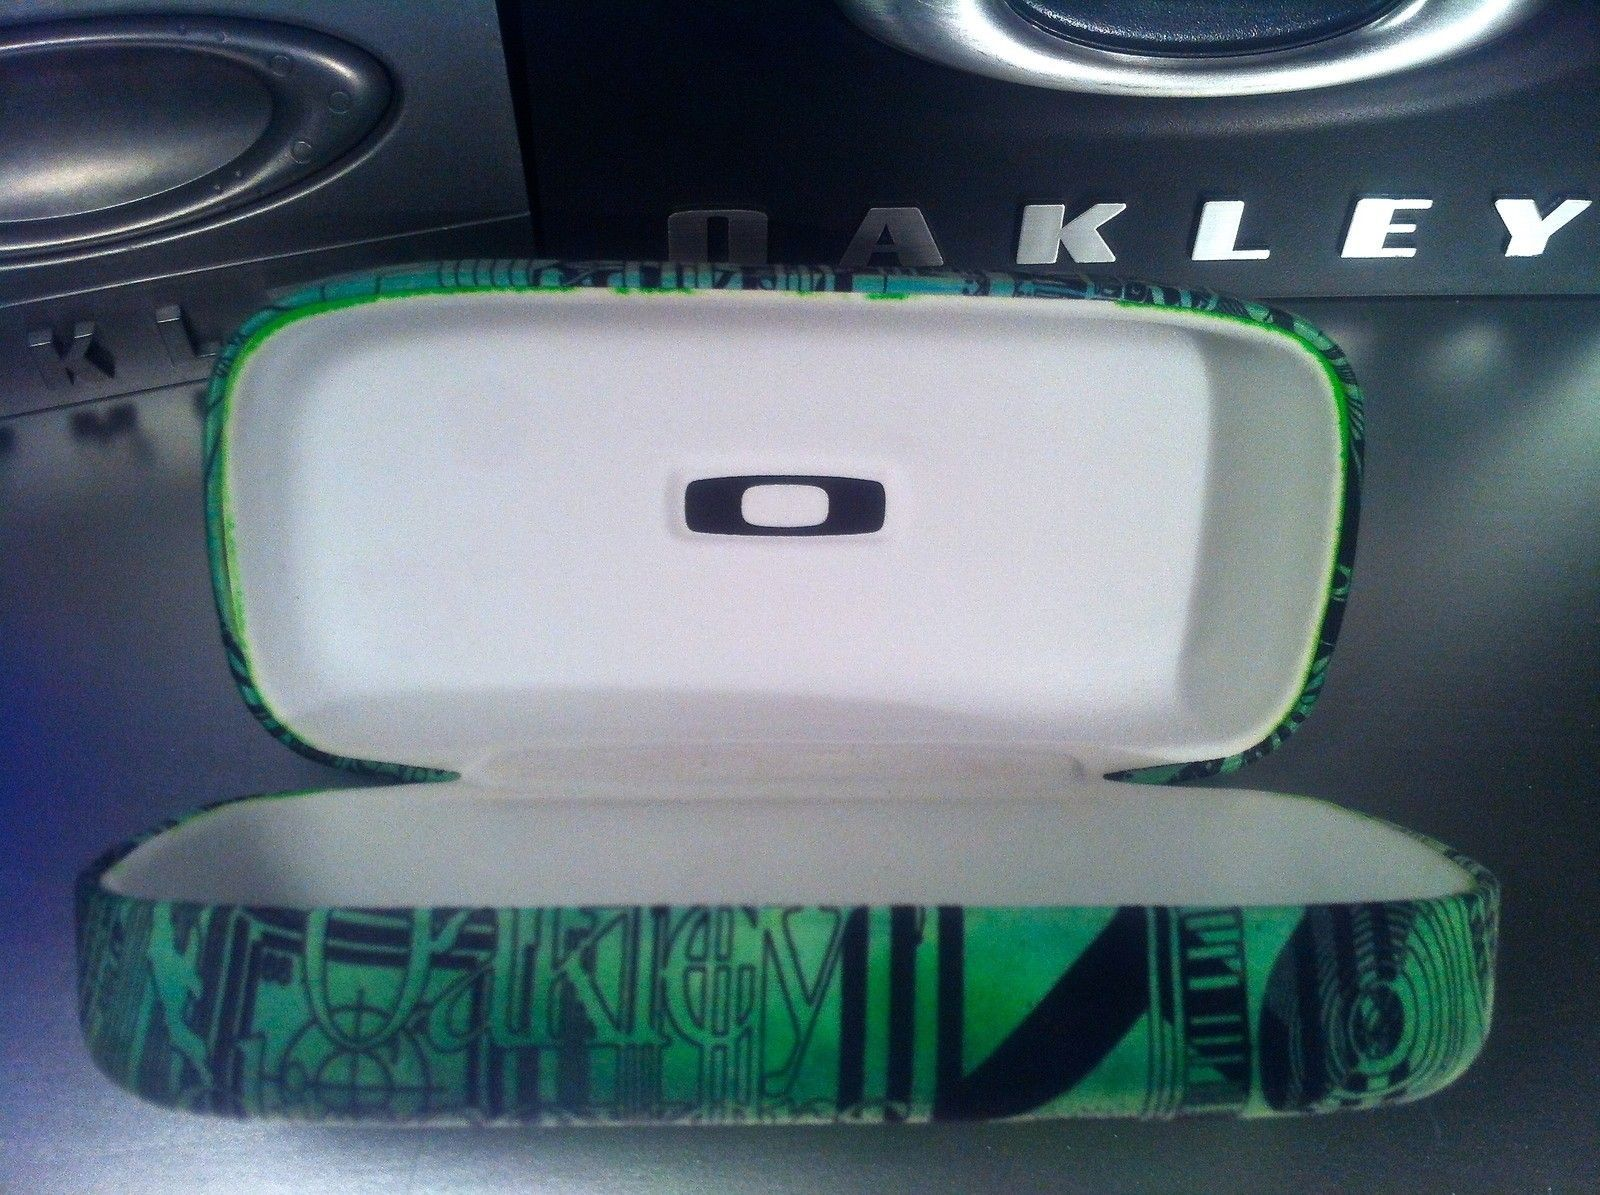 Customized cases - IMG_6382.JPG